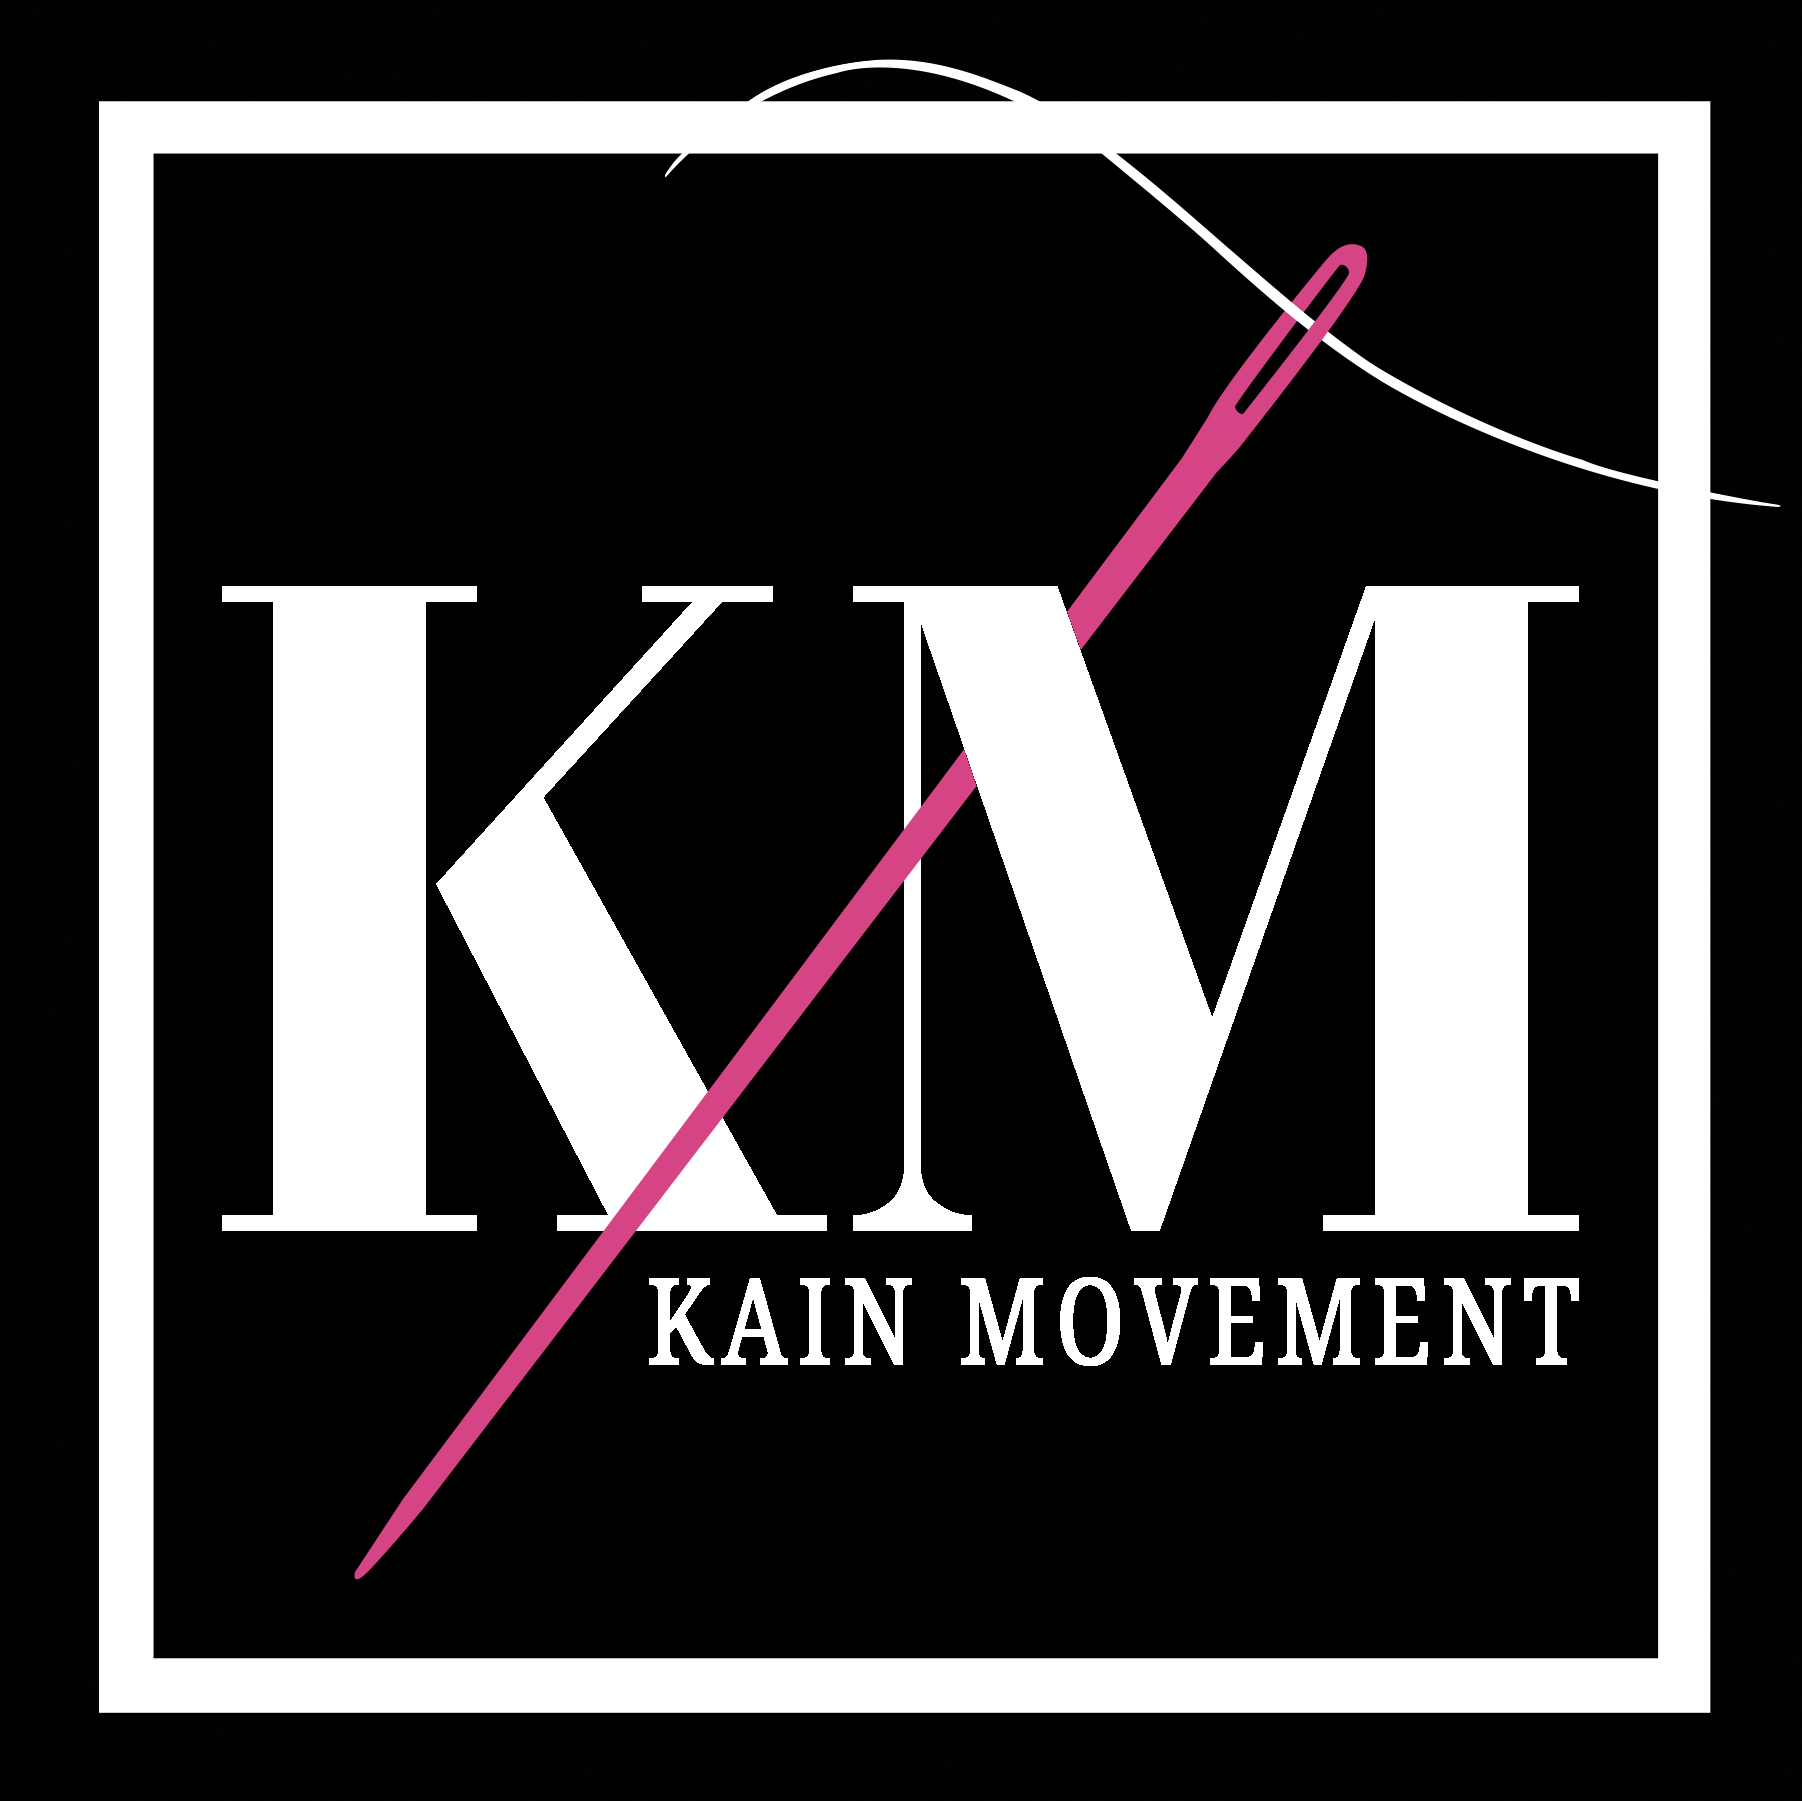 Kain Movement